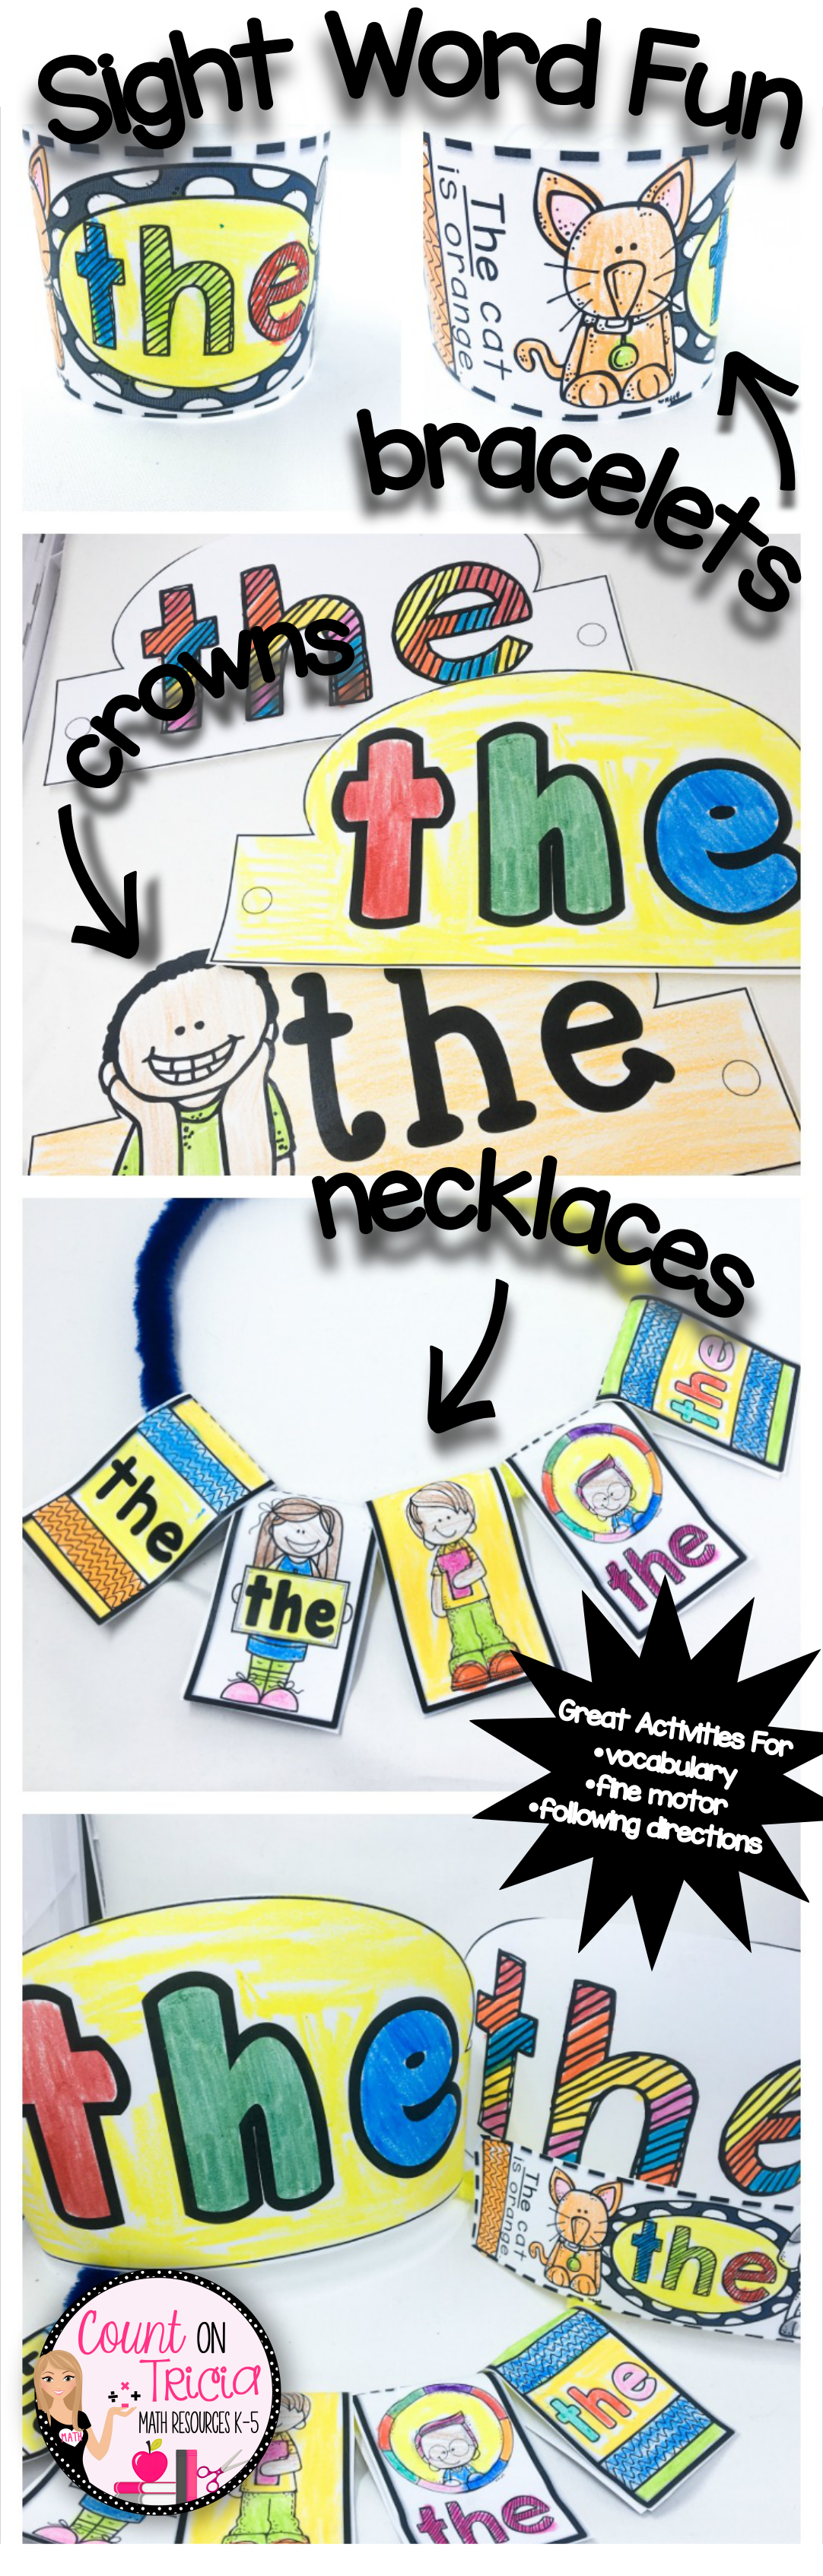 Sight Word Fun Create Sight Word Headbands Necklaces And Bracelets For Beginning Readers